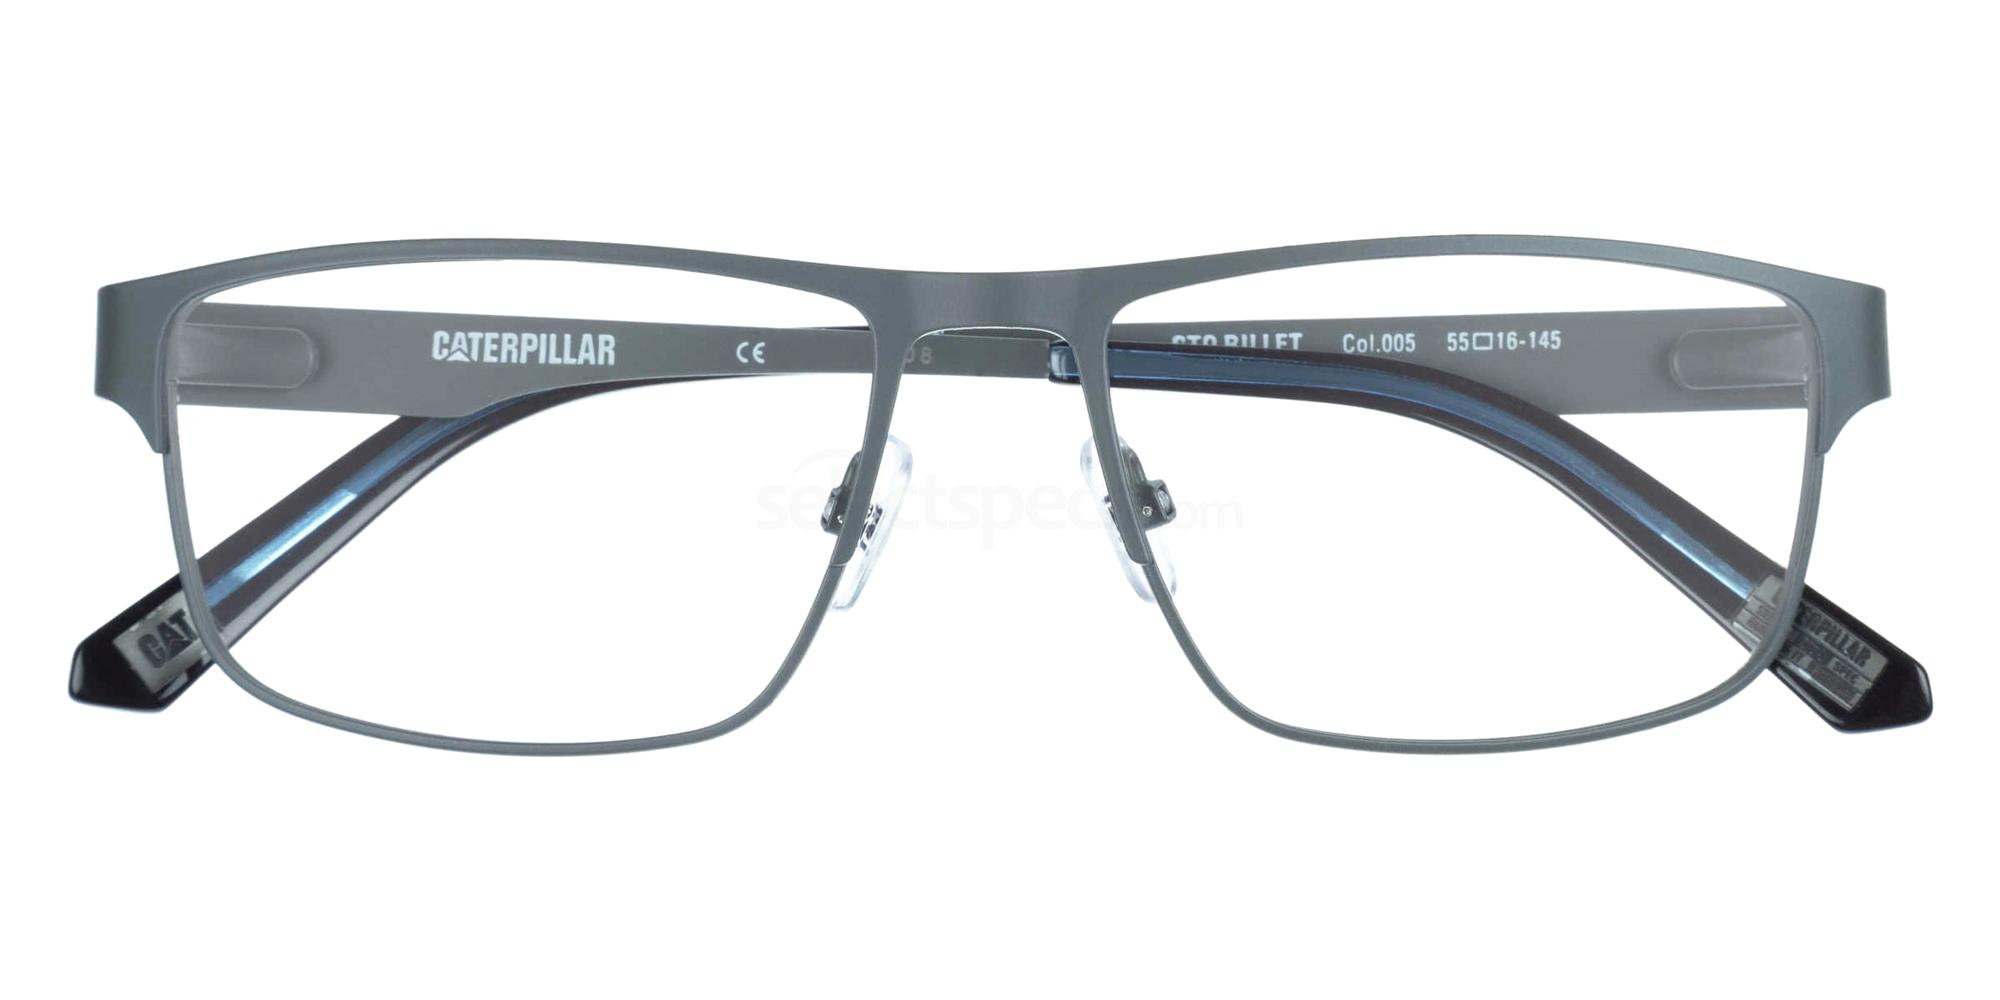 005 CTO-BILLET Glasses, CAT